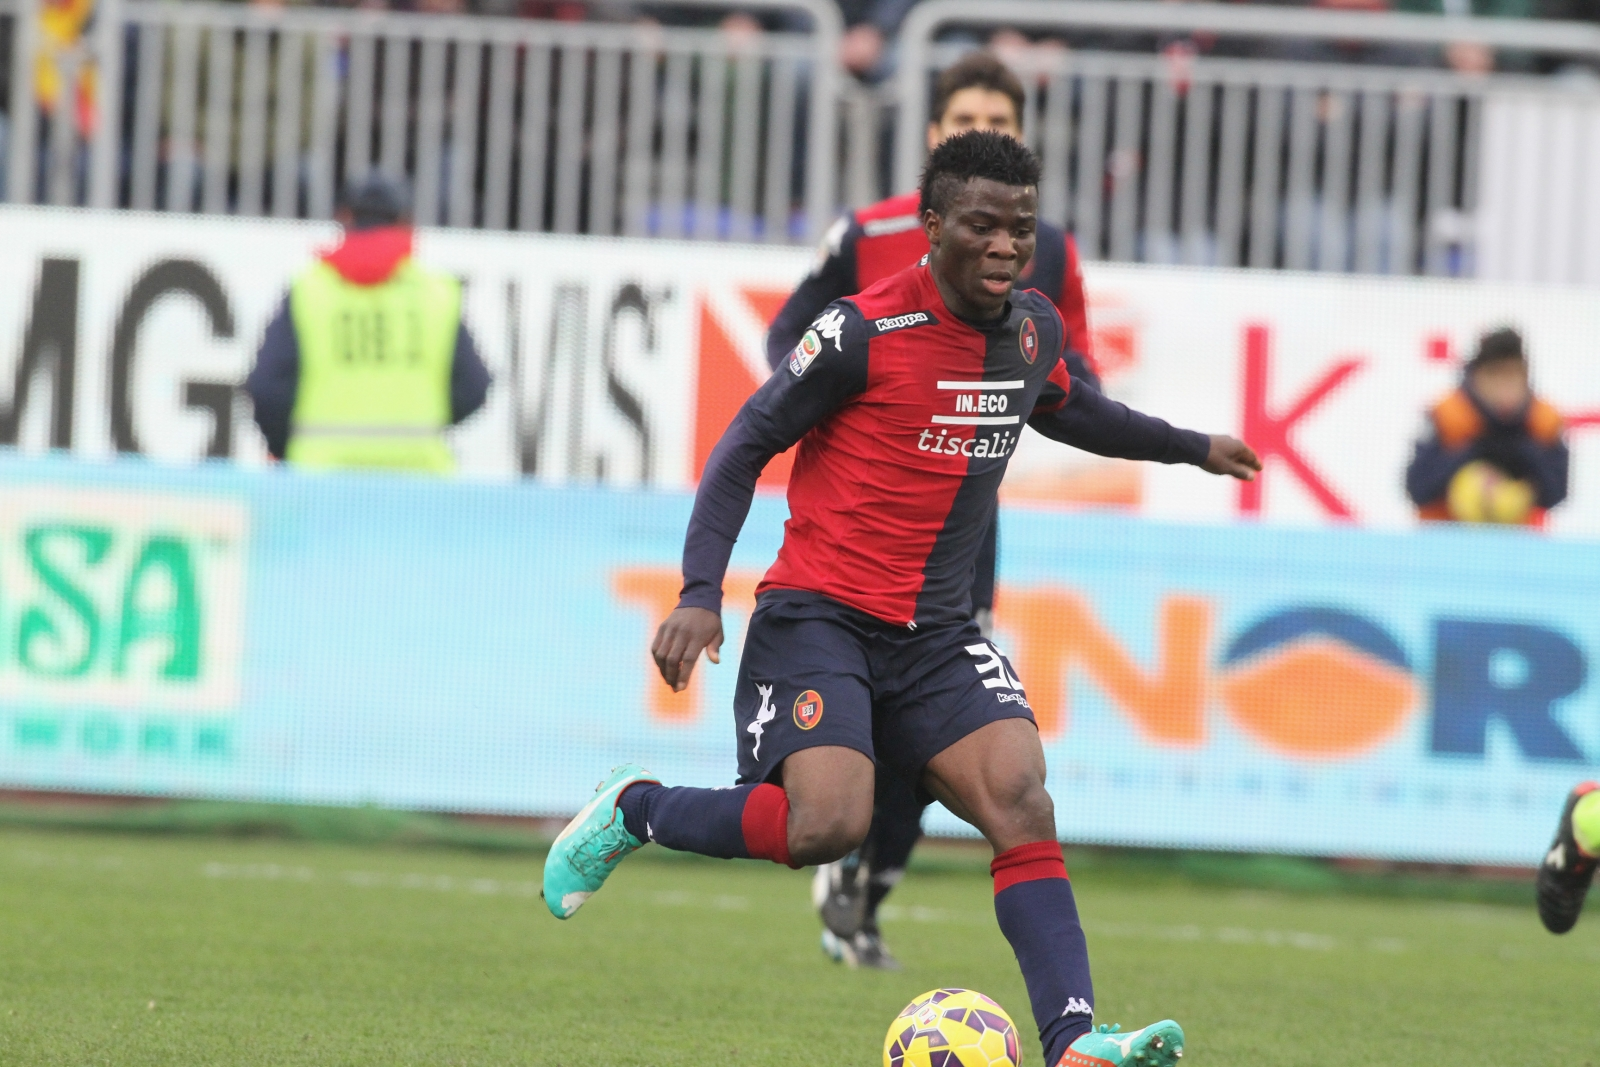 Bologna midfielder Godfred Donsah handed starting role to face Inter Milan on Tuesday night